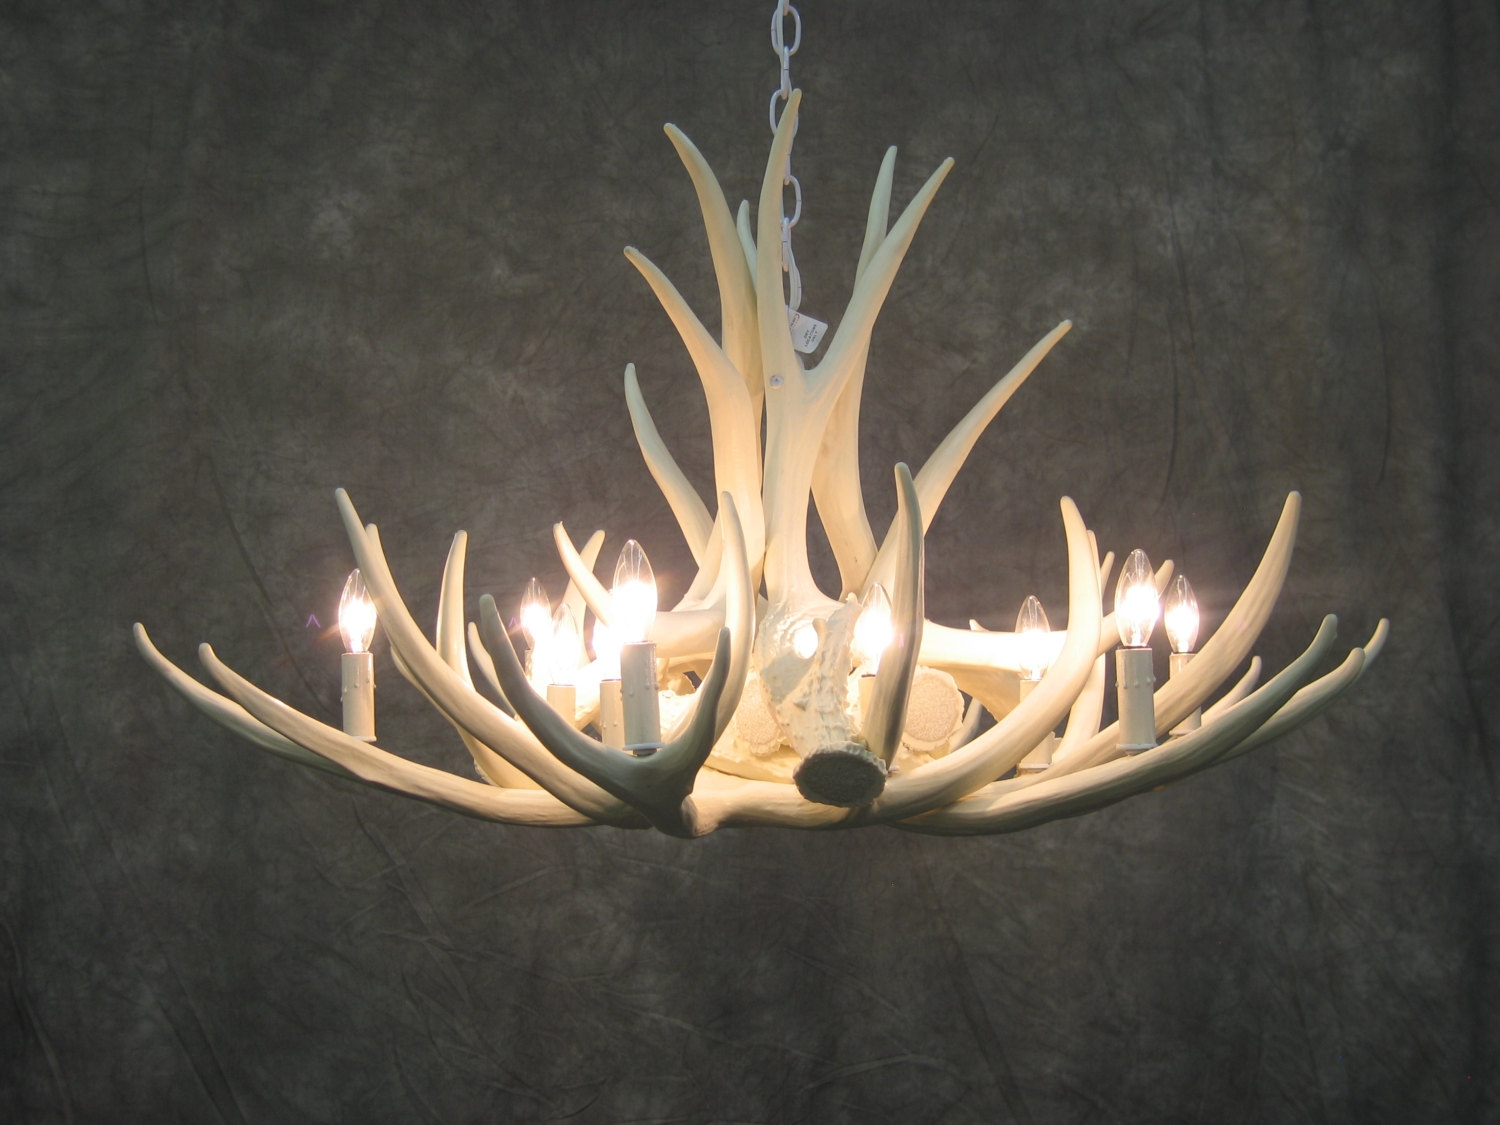 White Antler Chandelier Faux Deer Antler Chandelier D9 In Antler Chandelier (Image 14 of 15)